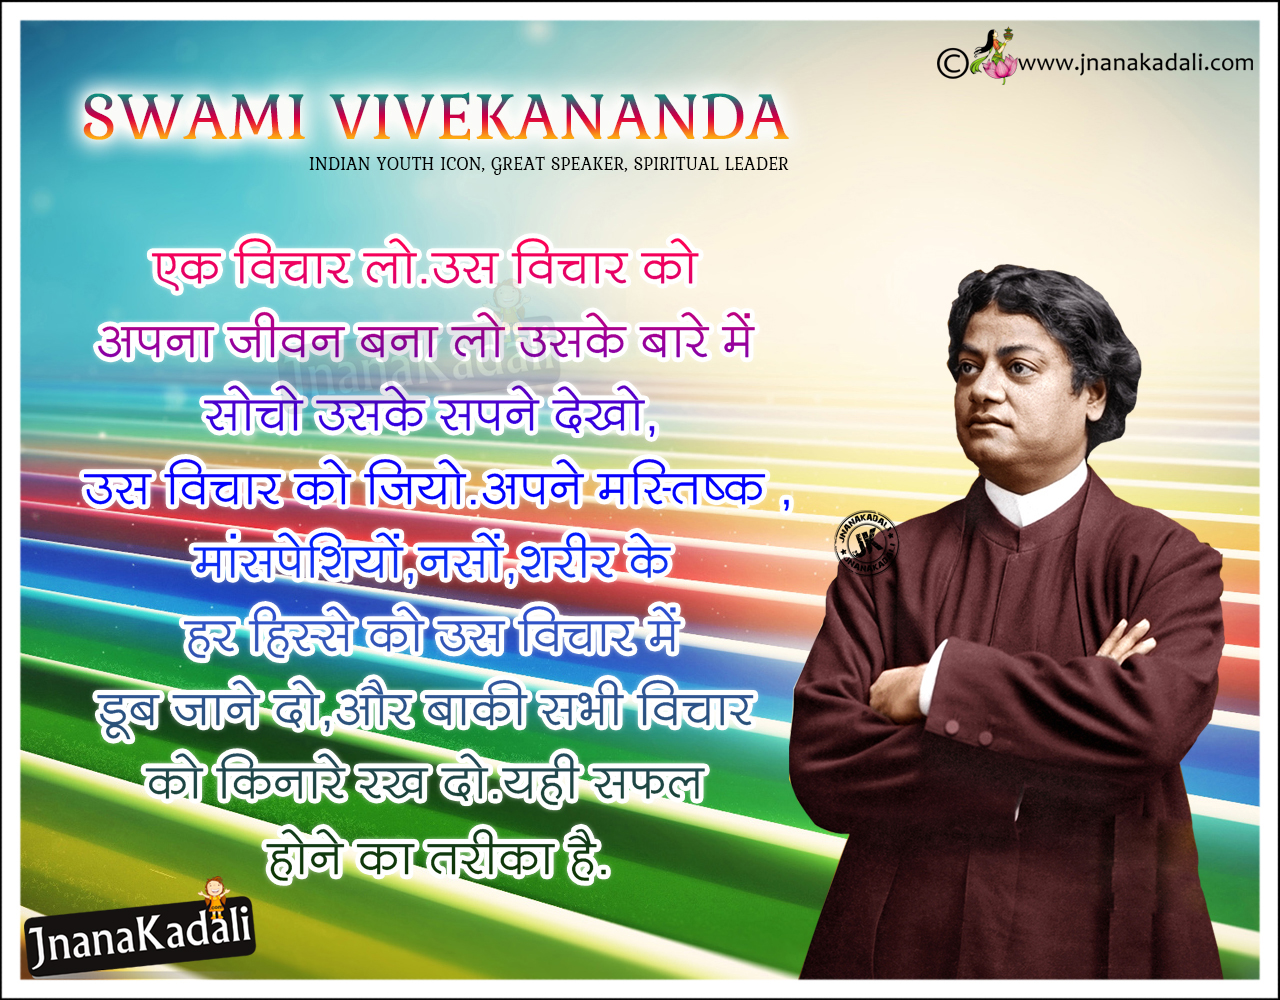 Swami Vivekananda Success Quotes In Hindi: Swami Vivekananda Hindi Shayari-Hindi Anmol Vachan By